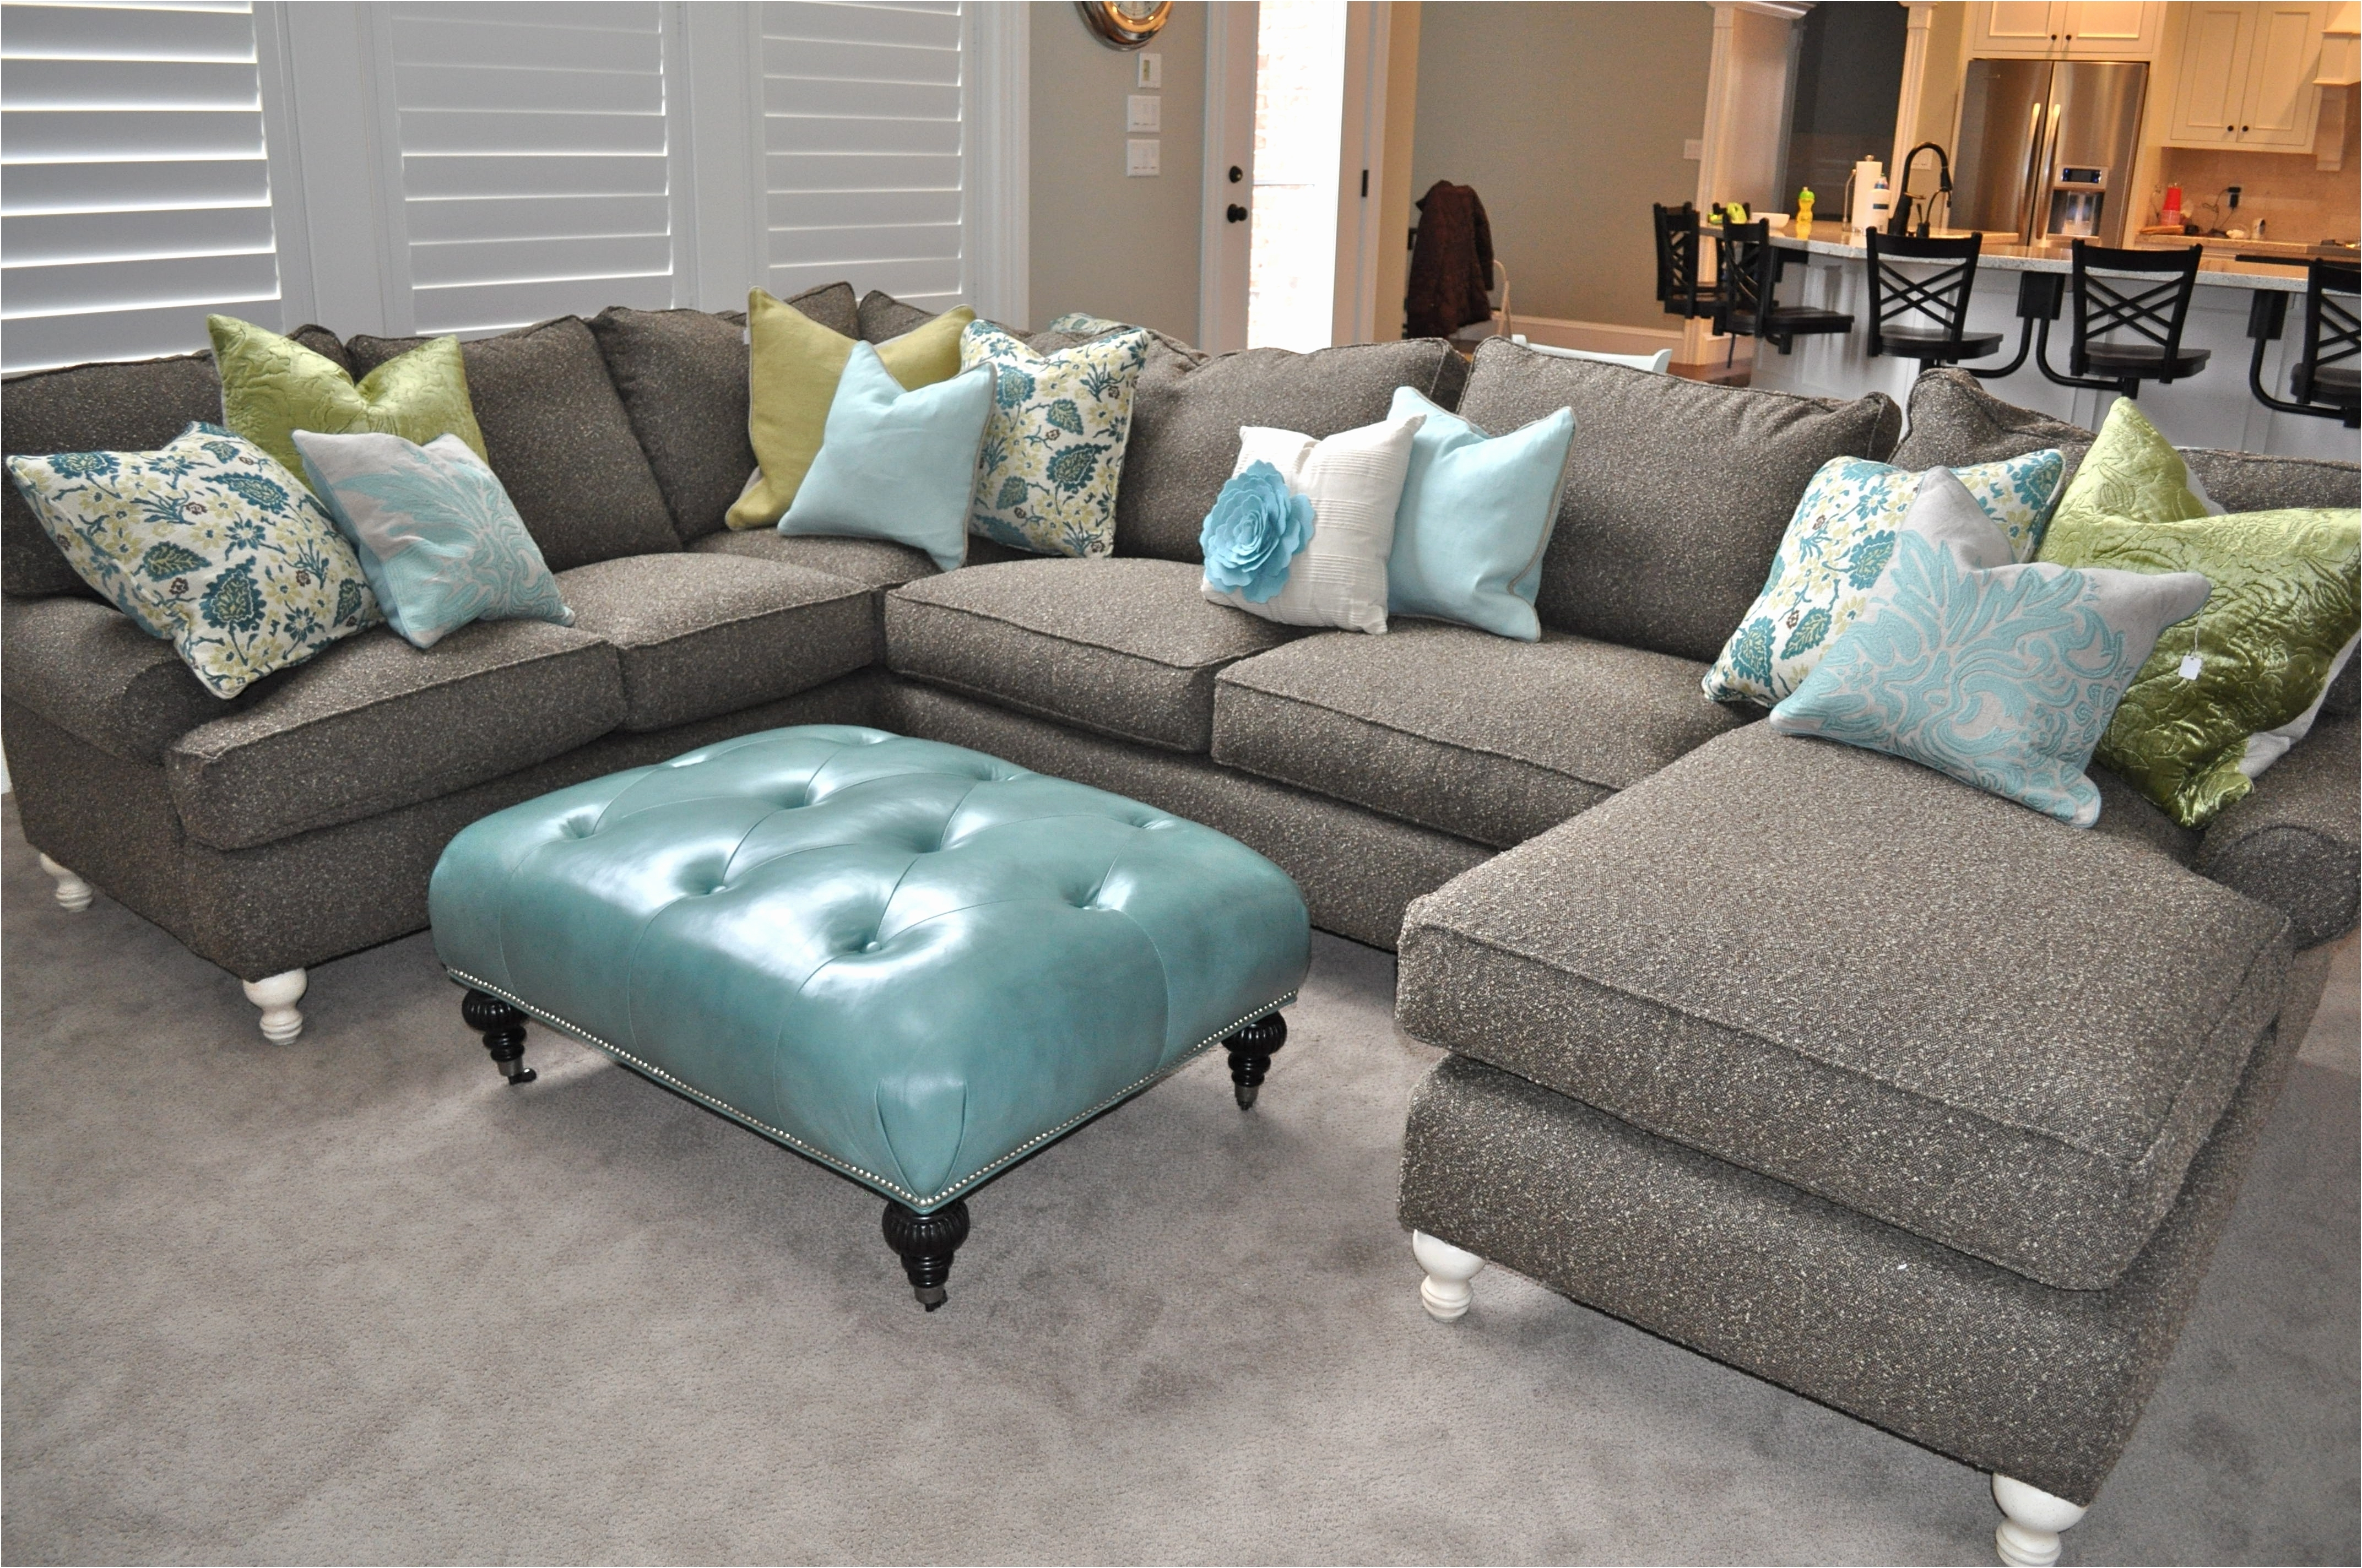 Down Sectional Couches Filled Sofa Feather Macys Canada Stunning As With Down Filled Sofas (Image 2 of 10)